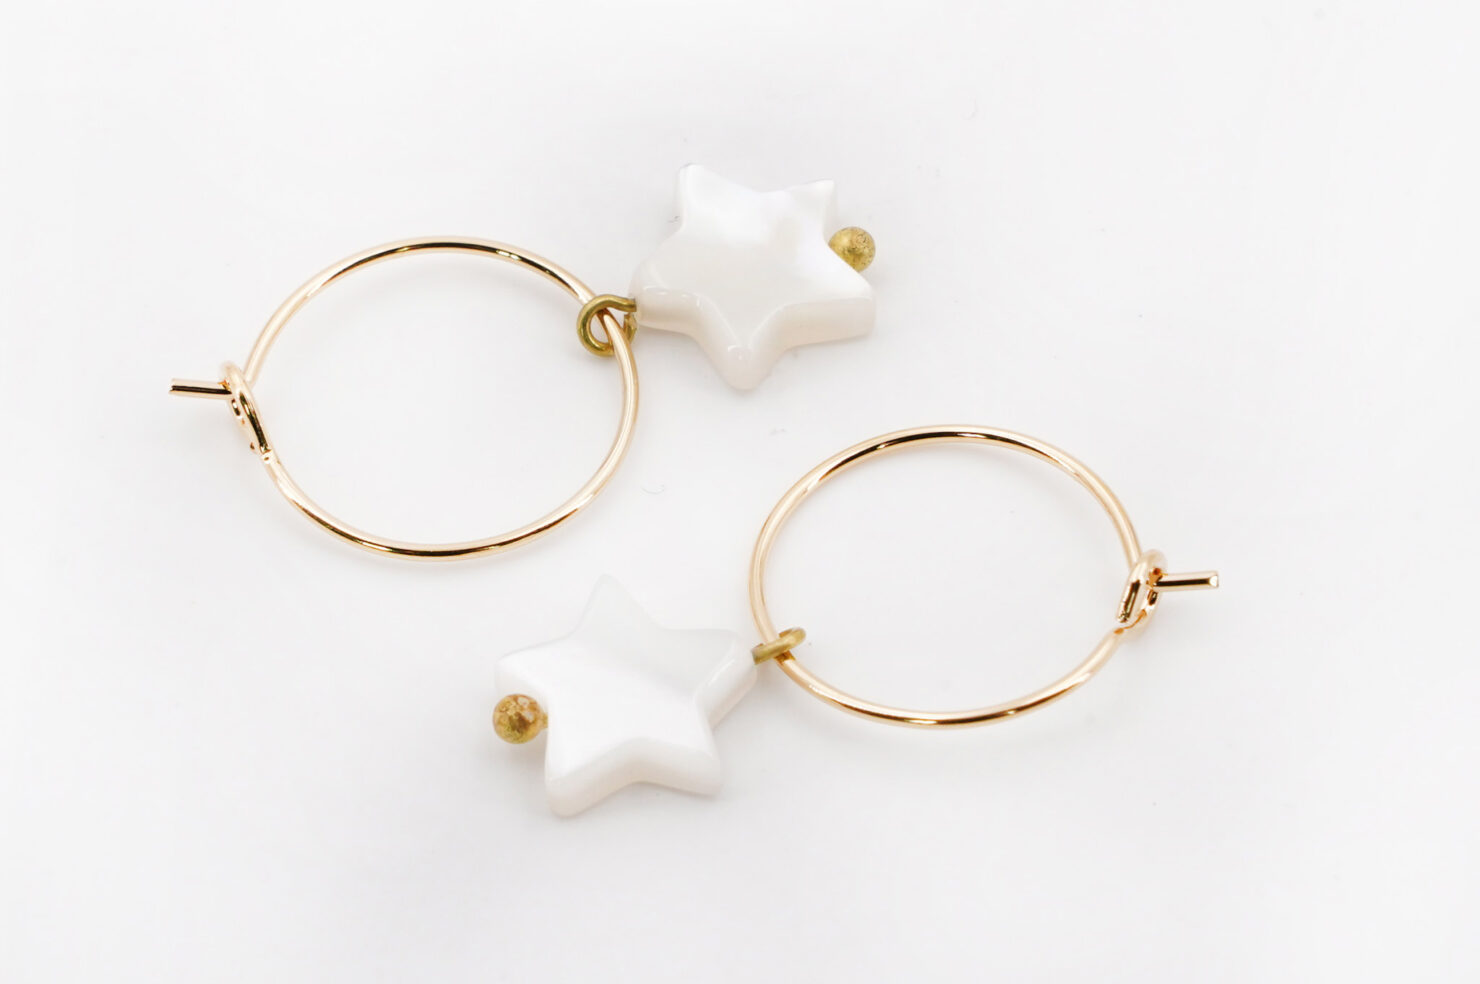 URANUS HOOP EARRINGS - MEDICINE DOUCE